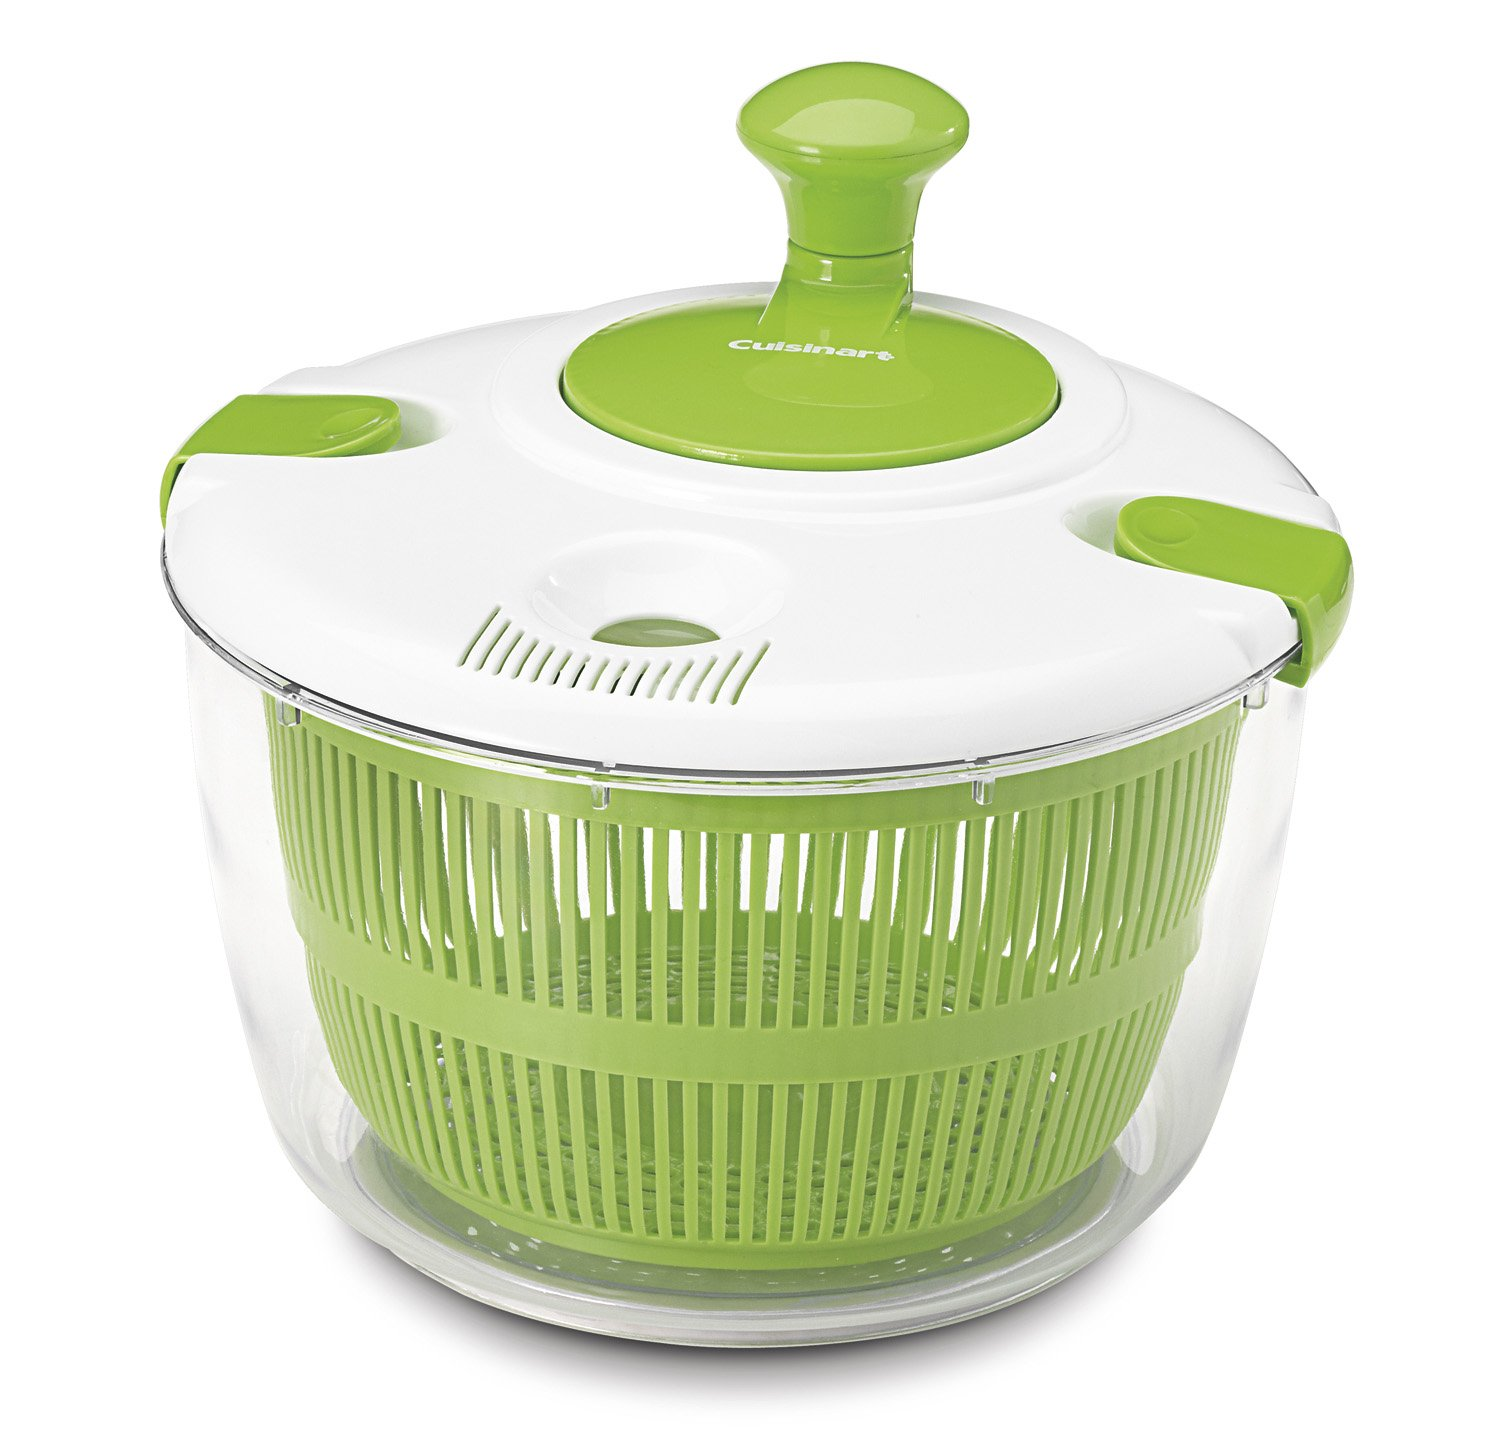 Salad spinner how it works